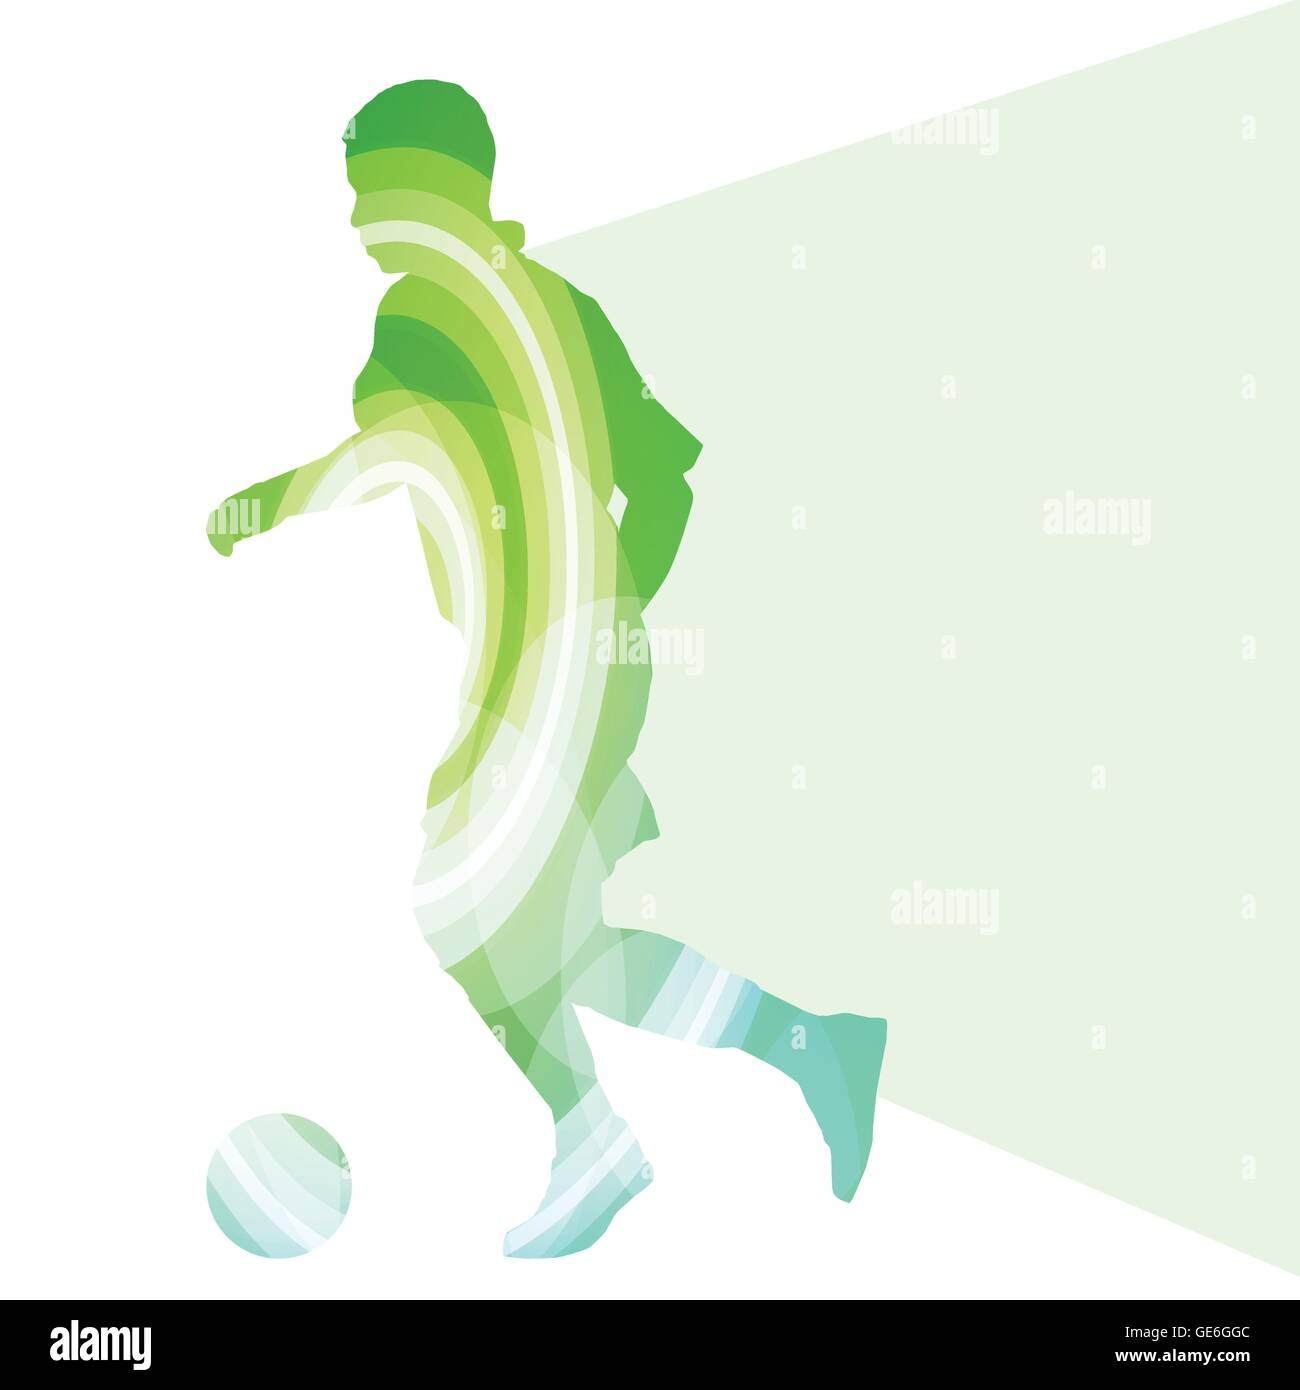 Soccer football player silhouette vector background colorful concept made of transparent curved shapes - Stock Vector